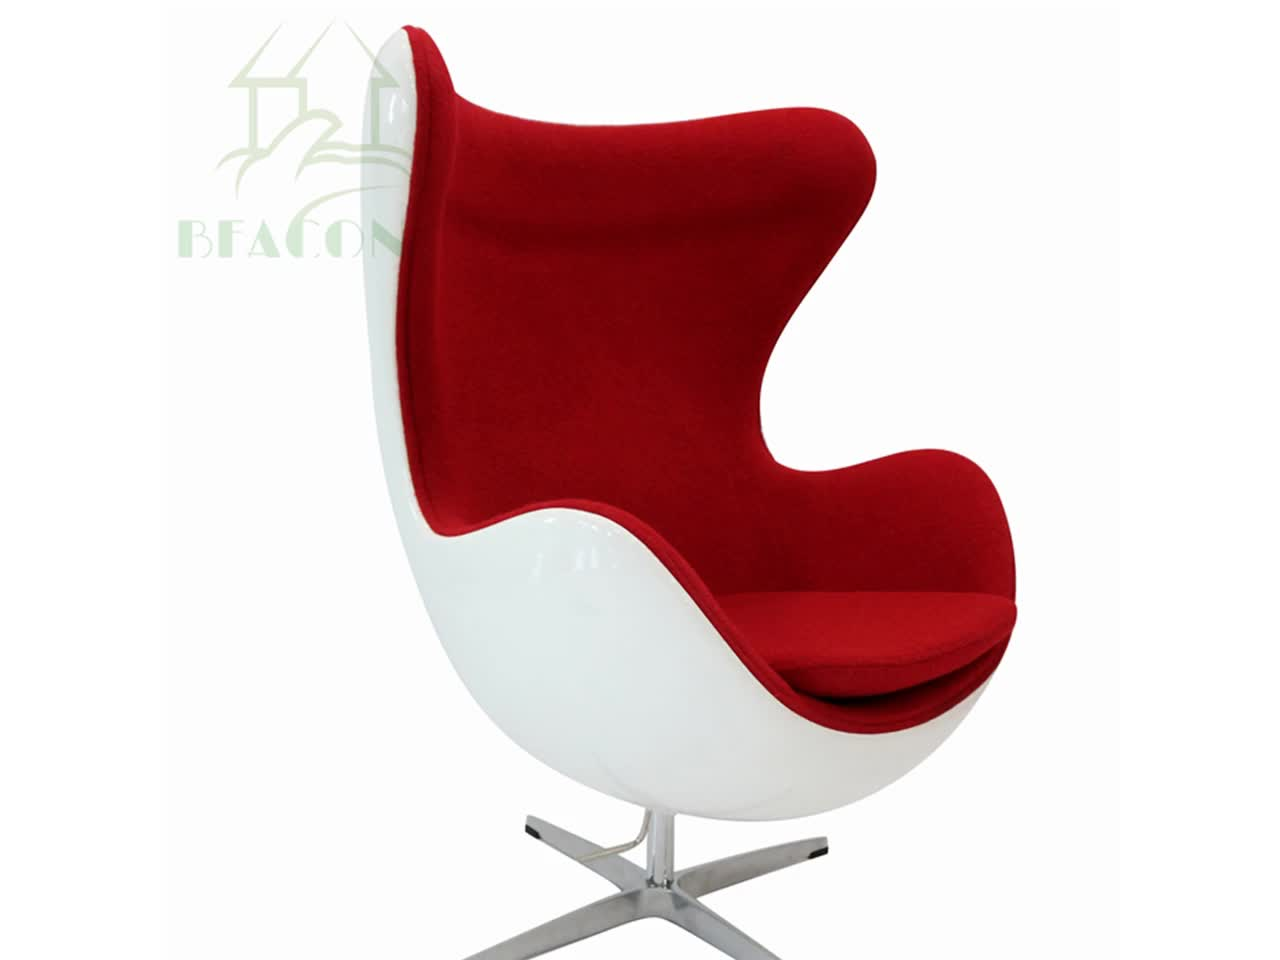 Buy Egg Chair Cheap Used Adult Size Egg Chair Buy Cheap Egg Chairs For